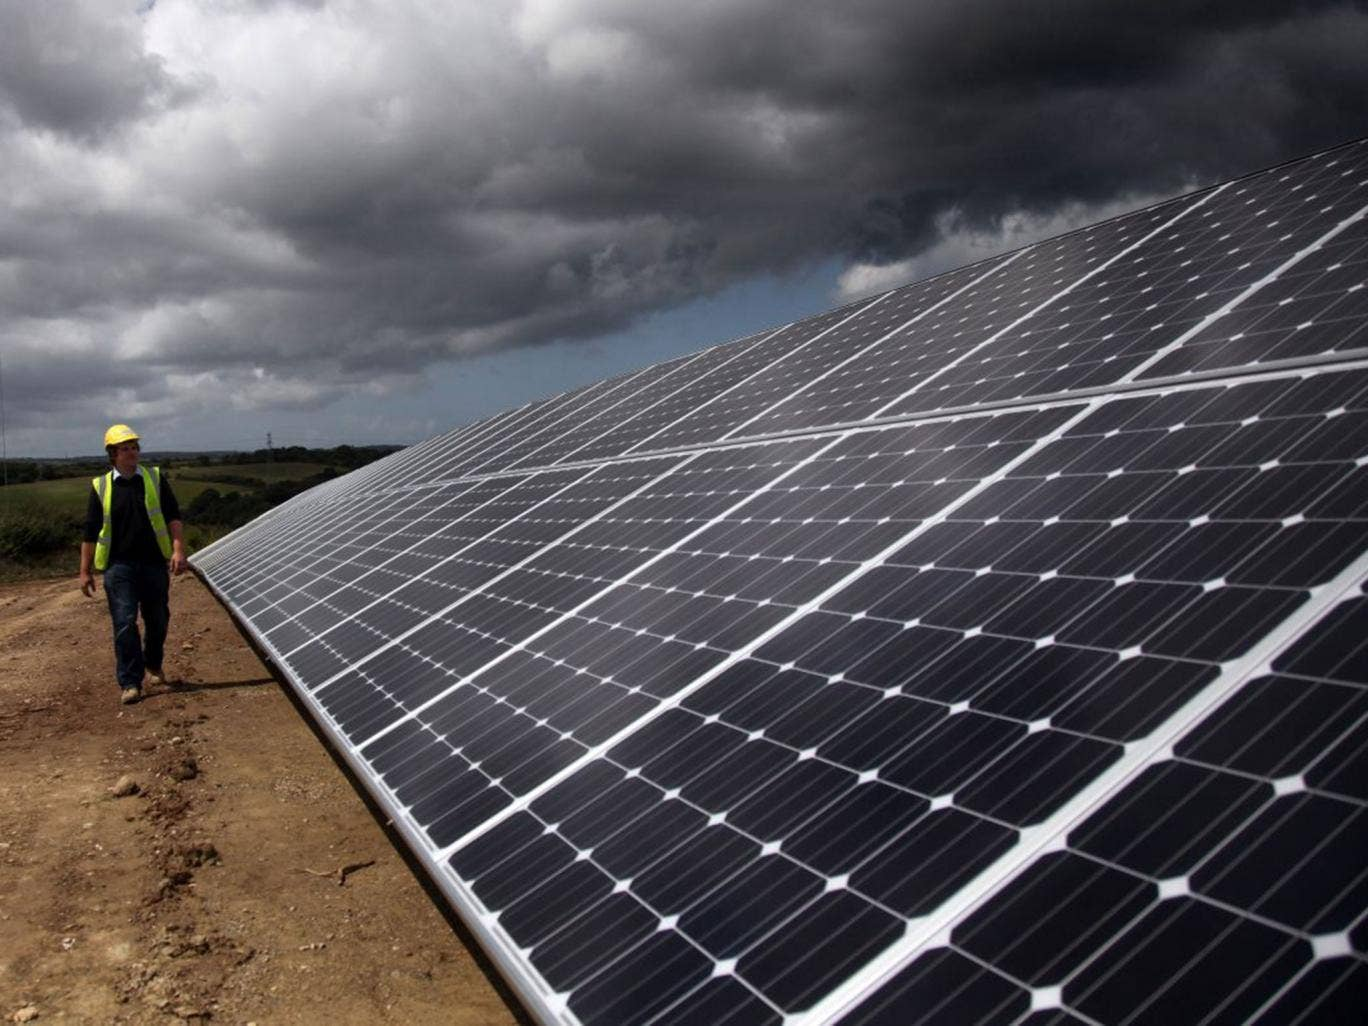 Making and maintaining solar panels will soon be cheaper than fossil fuels